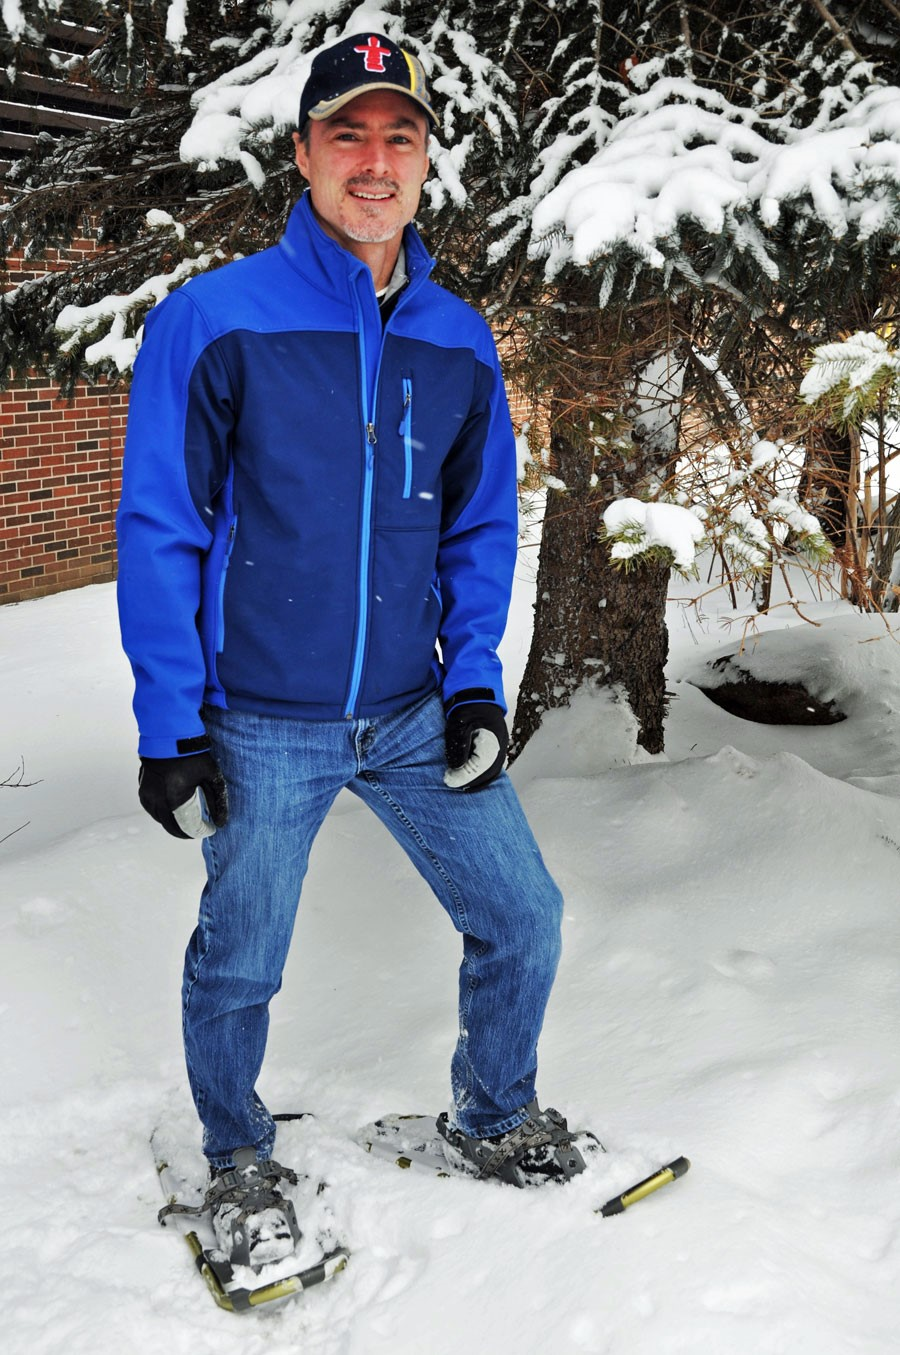 Man in blue ski jacket wearing snowshoes, standing just under a tree, baseball hat on